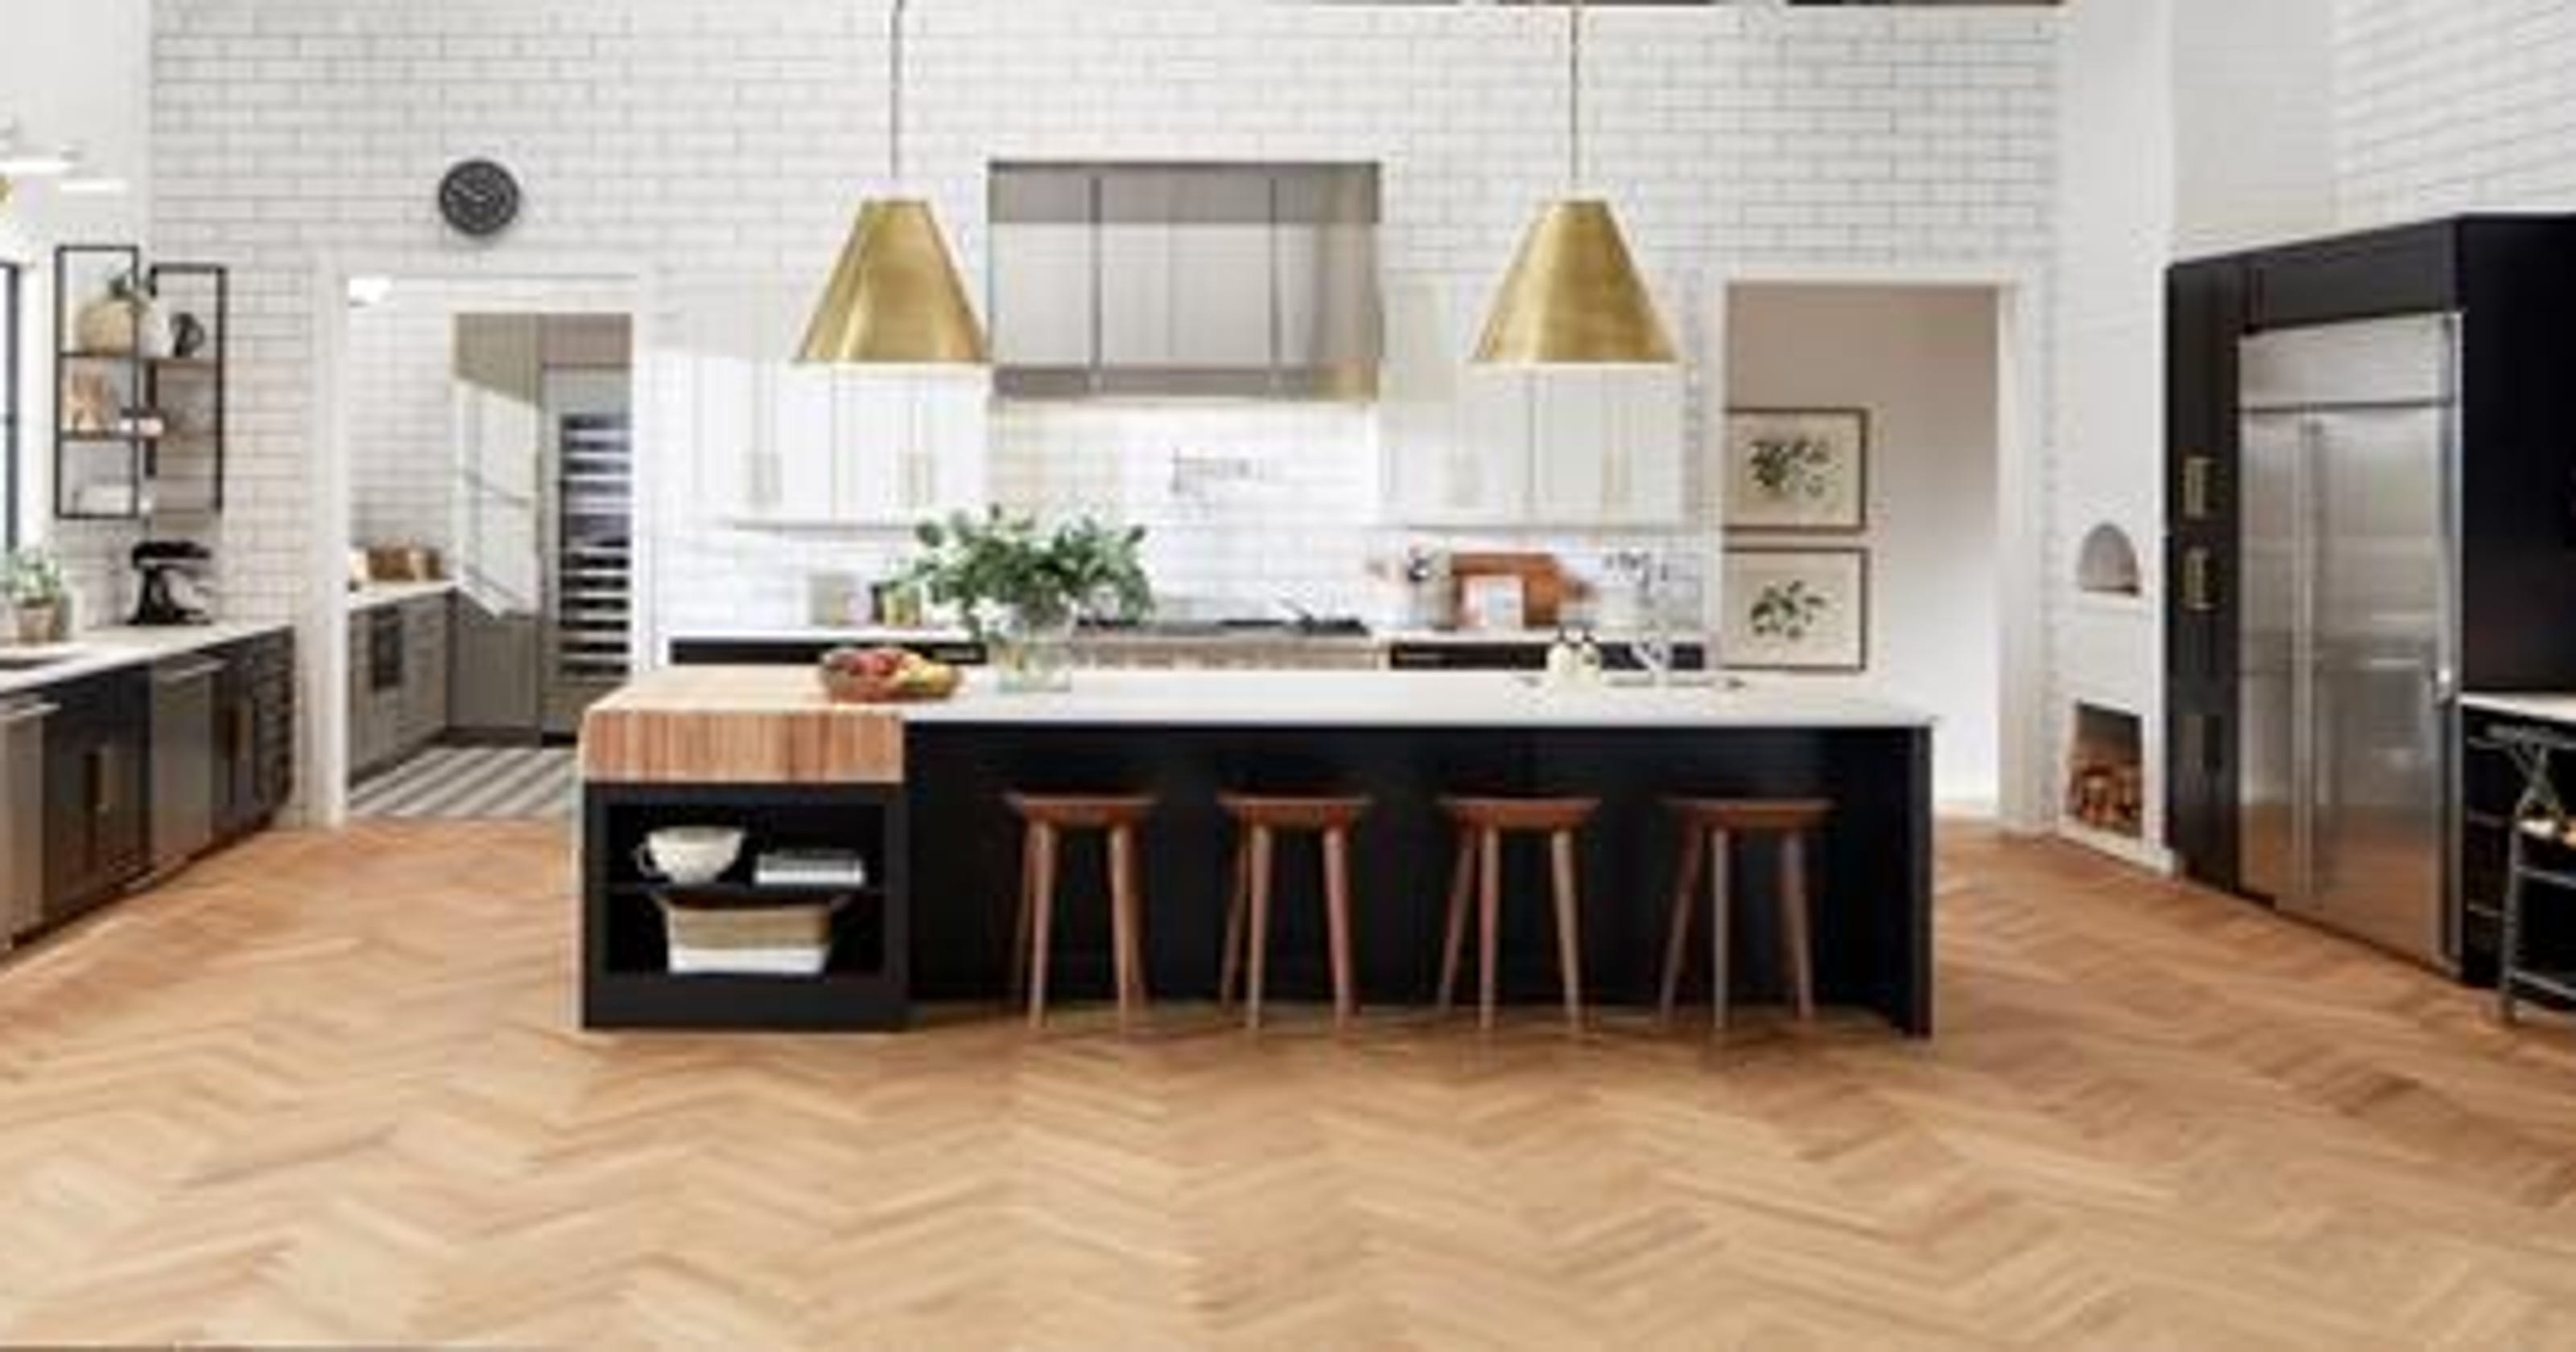 Food Network will give one lucky fan the kitchen of their dreams